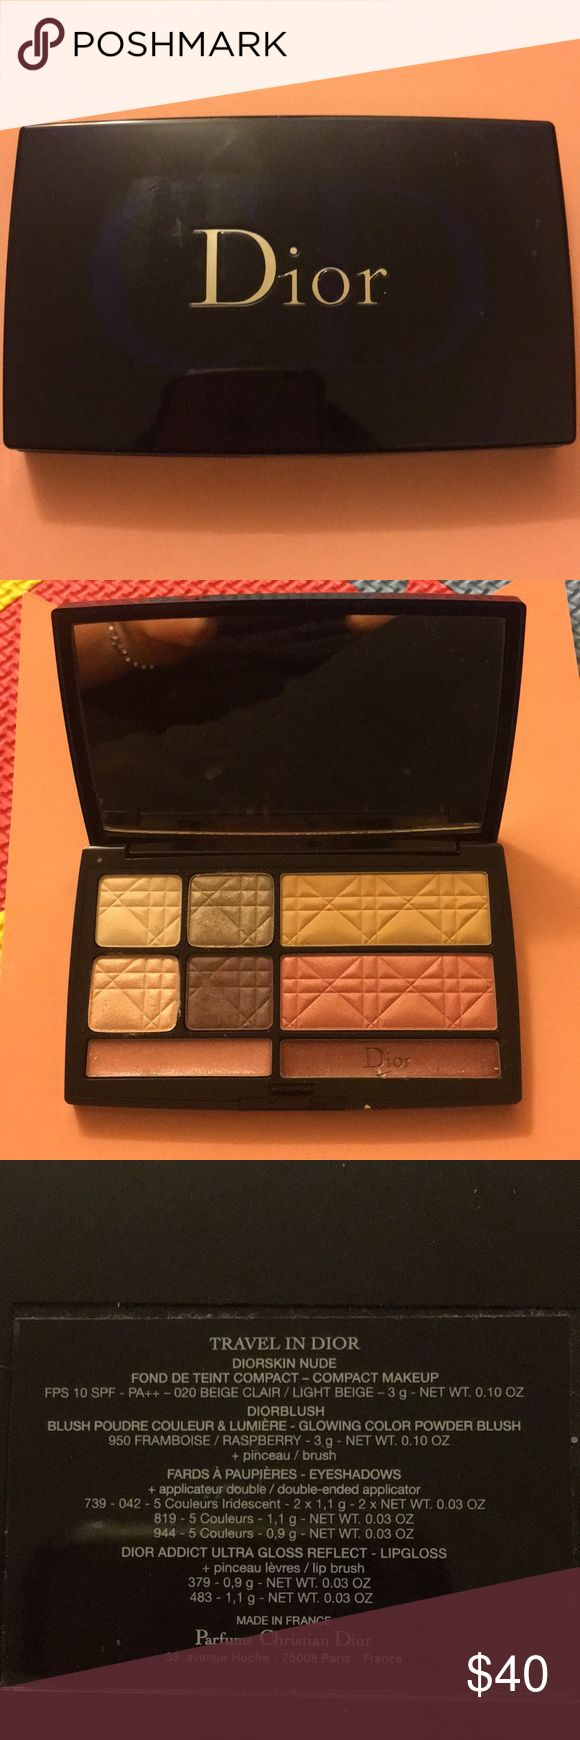 Dior travel in Dior pallets A palette with foundation compact, blush, eye shadow and lip gloss.  Gently used. Like new.   Sell as is. Dior Makeup Eyeshadow